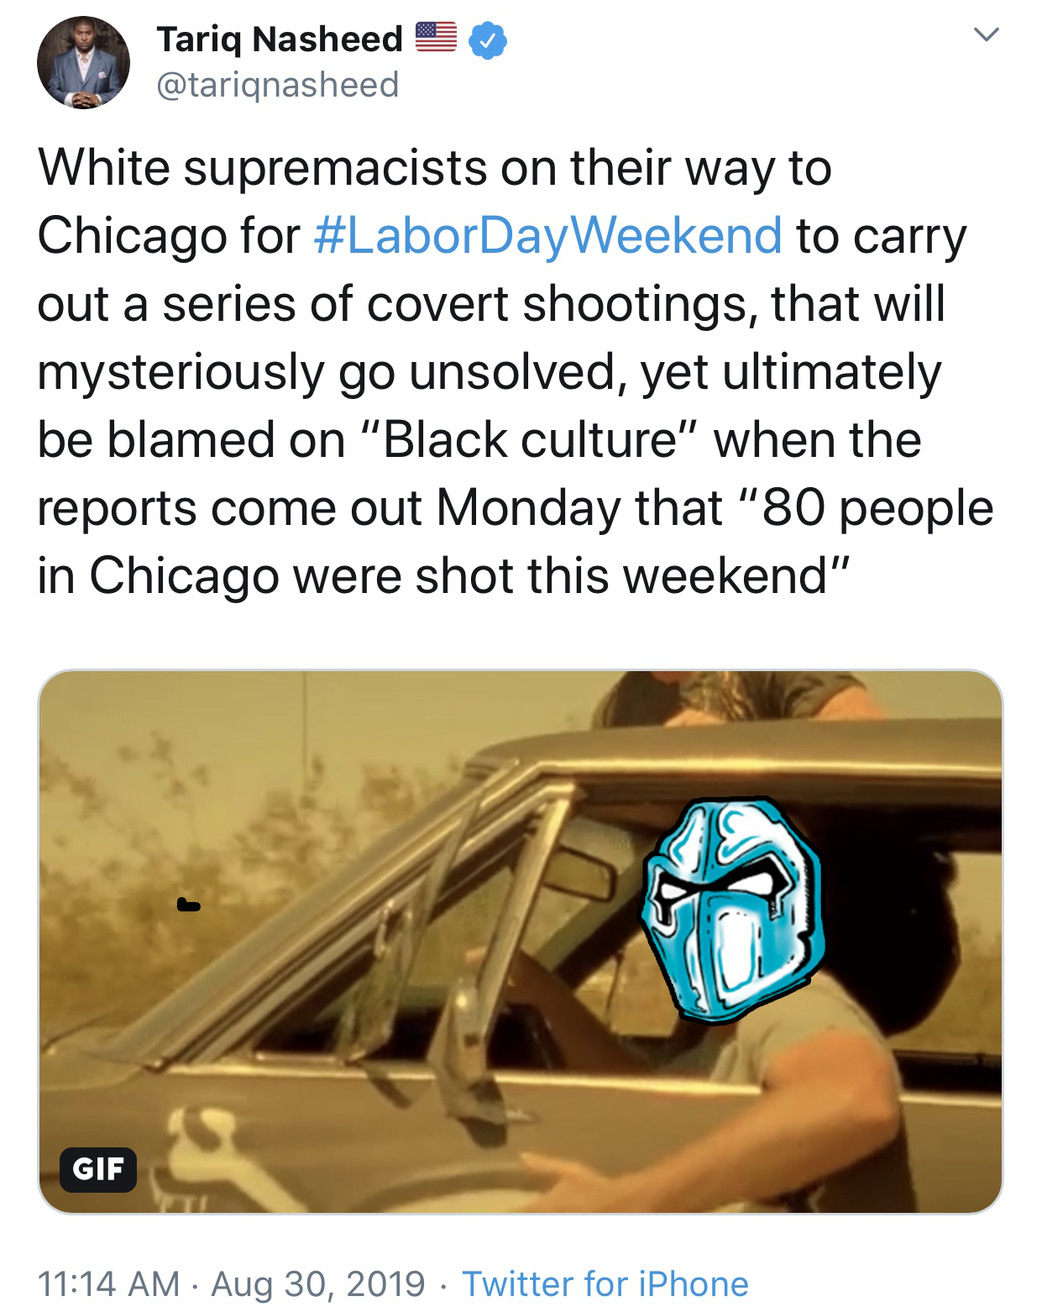 dongs in a supremacist - meme